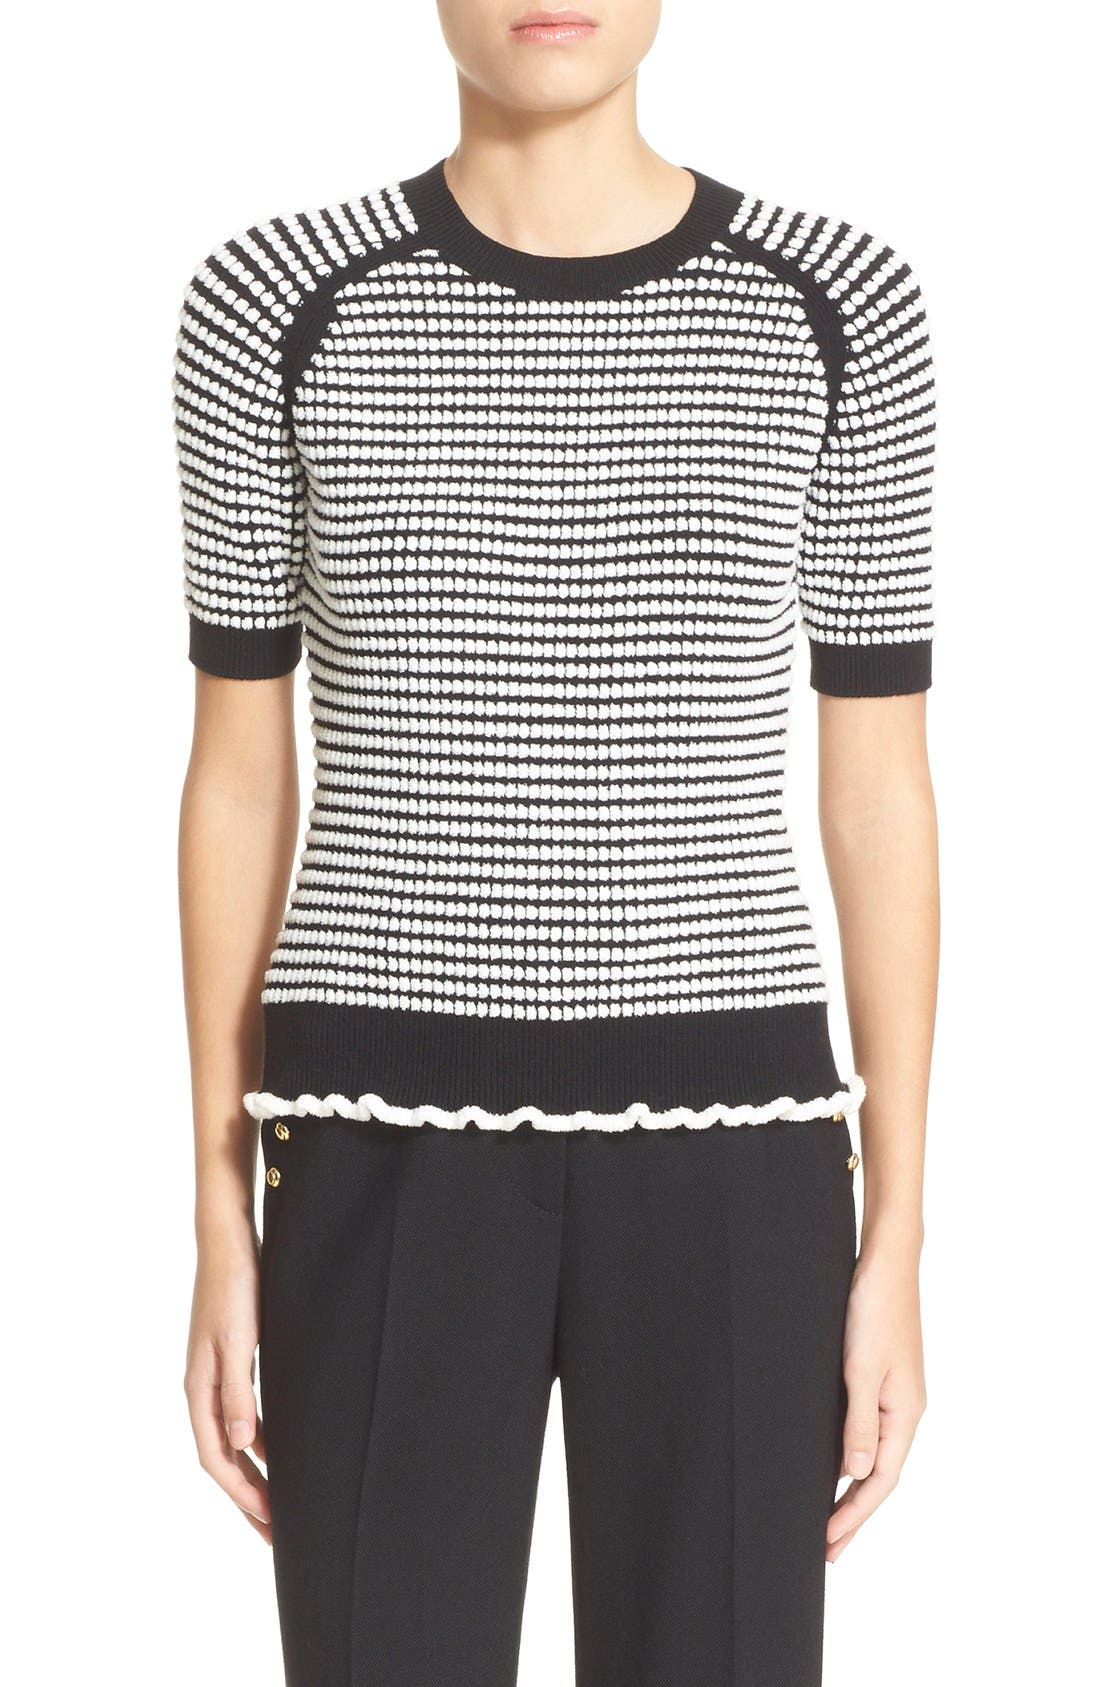 Alternate Image 1 Selected - 3.1 Phillip Lim Knit Ruffle Hem Sweater